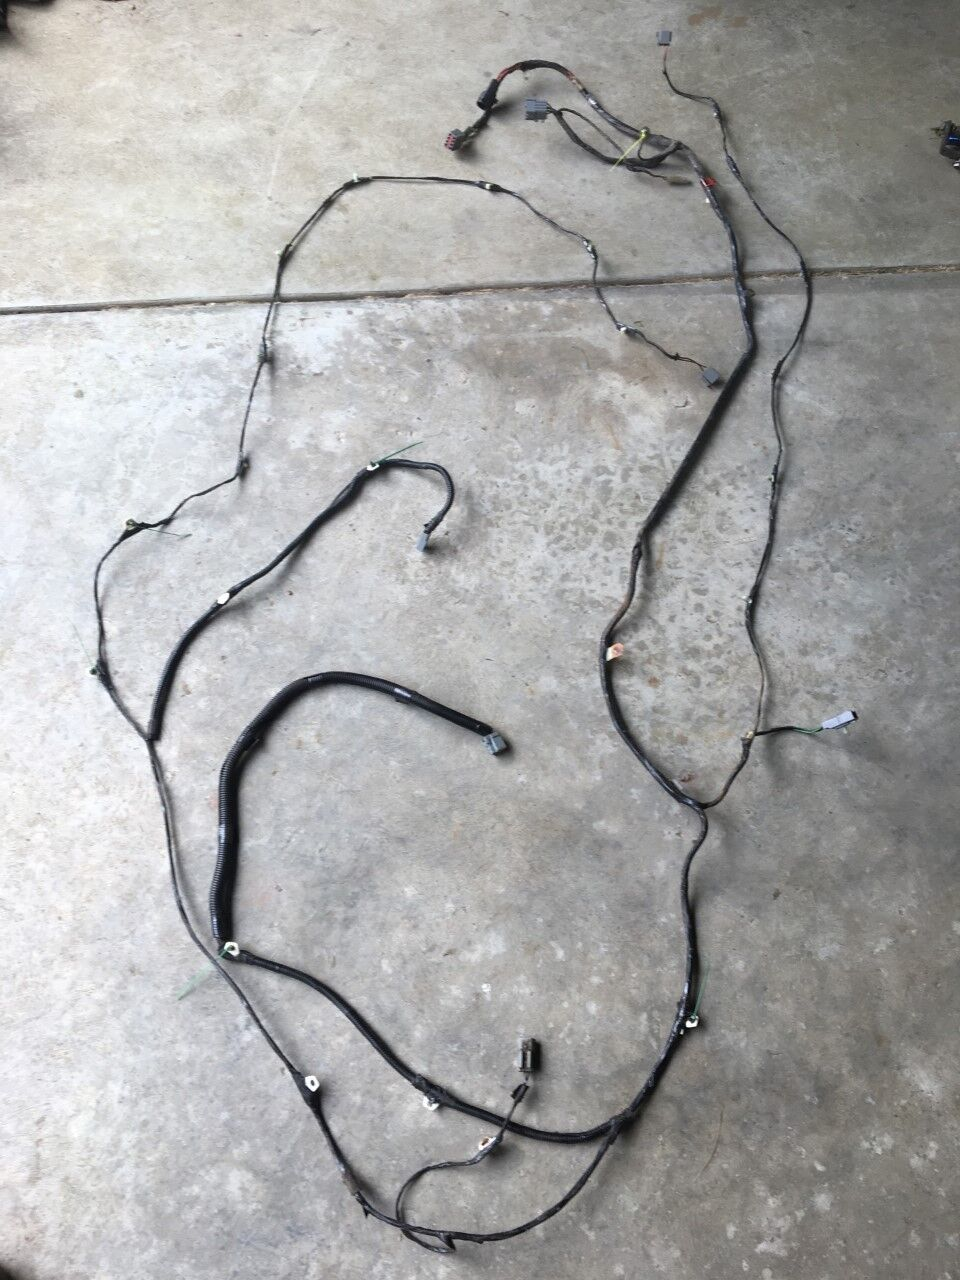 Used Ford F 150 Electrical Parts For Sale Wire Harness 1992 1996 F150 F250 F350 Bronco Interior Cab Wiring Under Carpet Obs